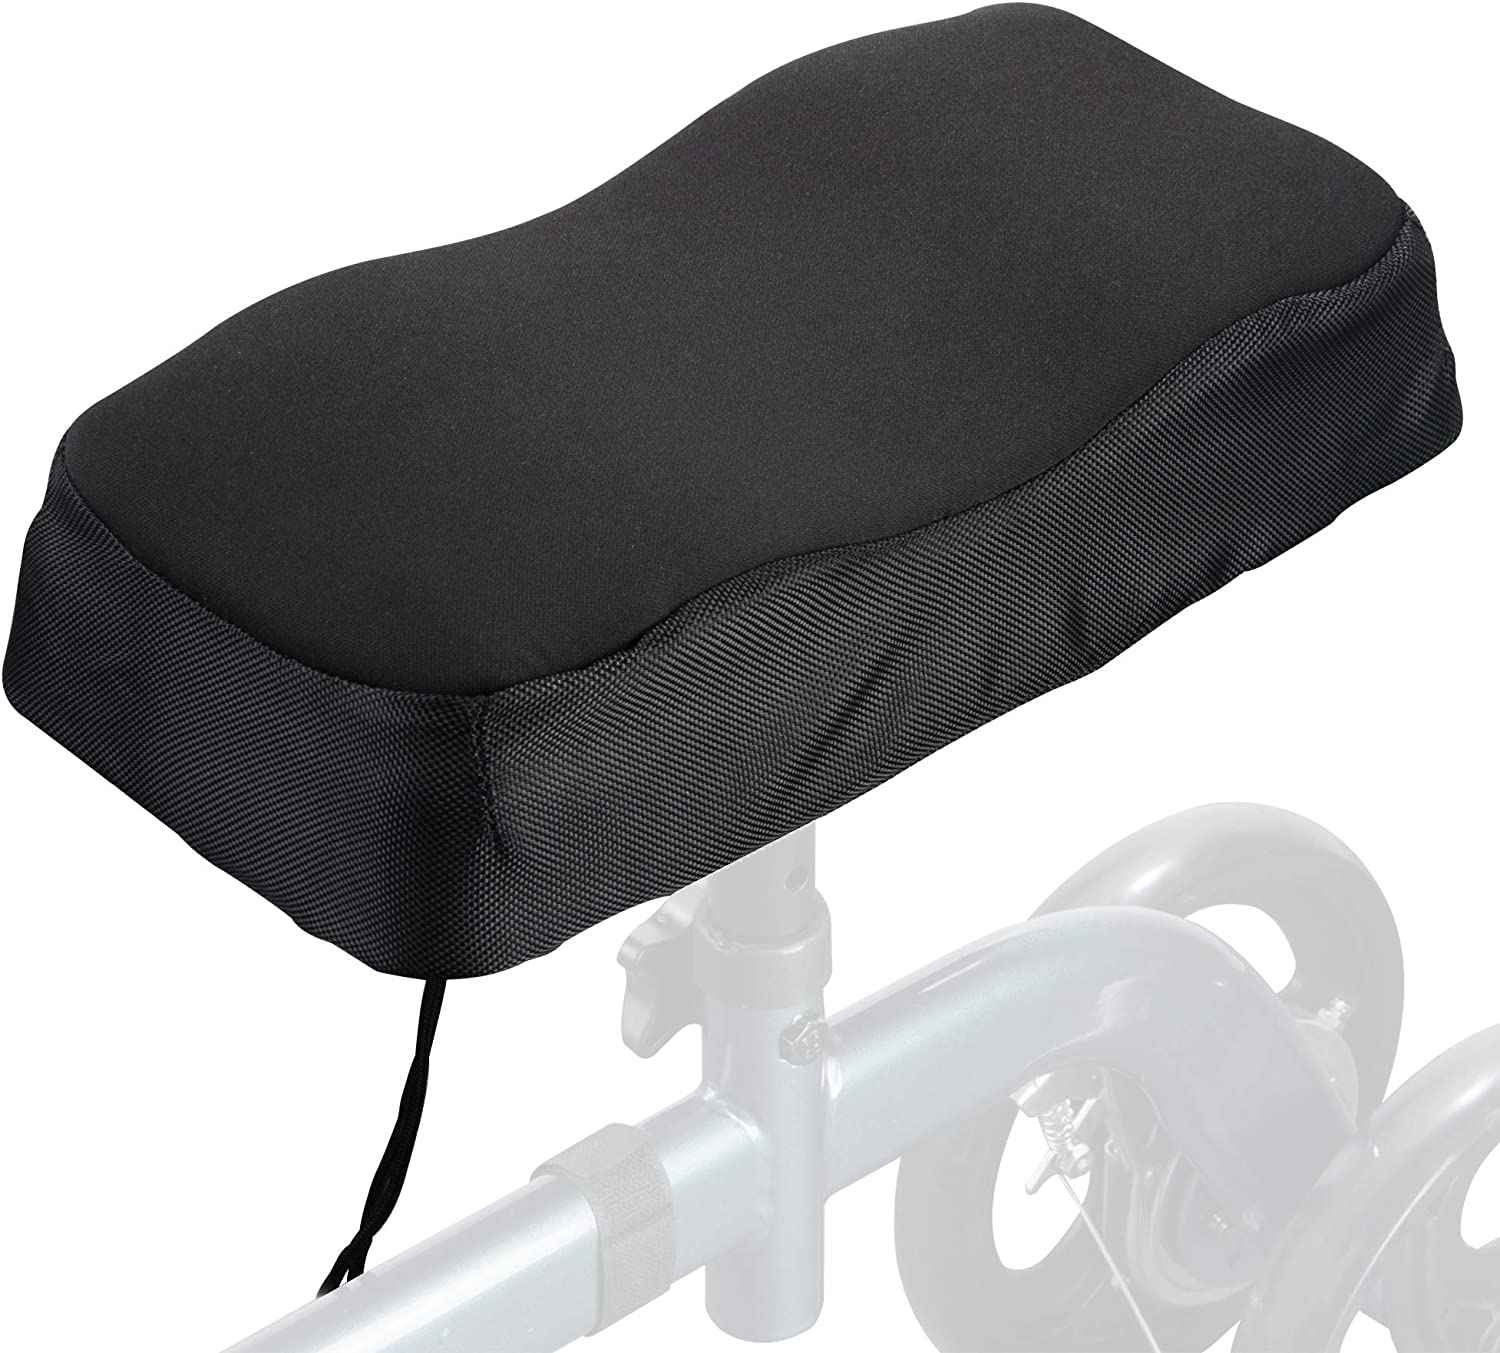 AW Universal Knee Walker Ranking TOP11 Max 90% OFF Pad Replacement Scooter Sponge Cu Cover